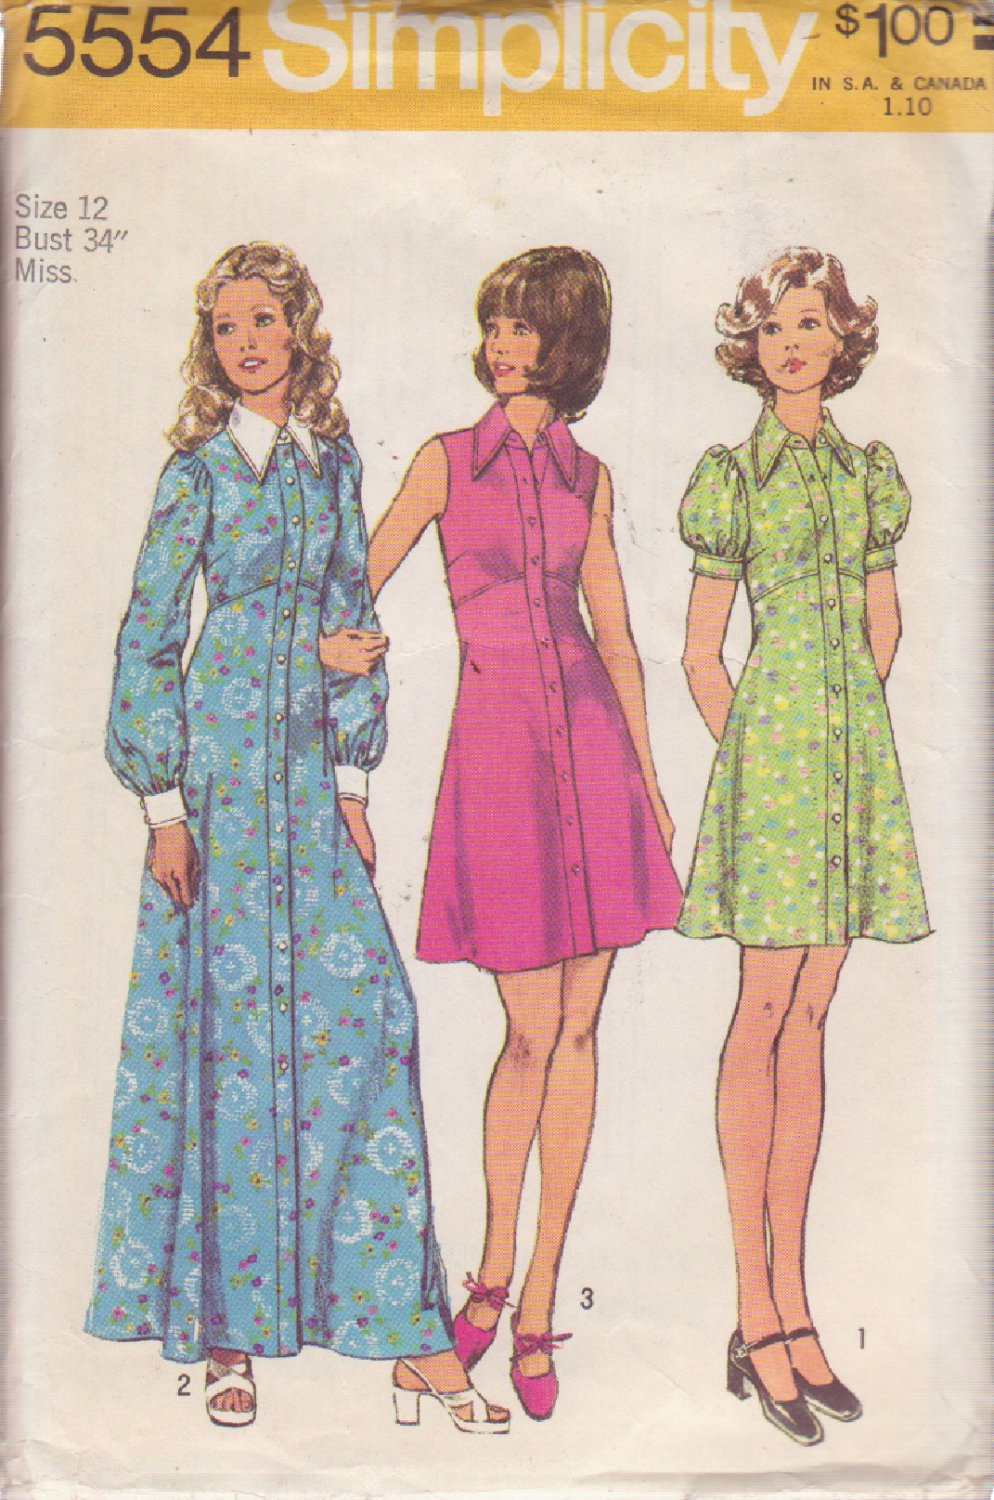 SIMPLICITY 5554 VINTAGE PATTERN MISSES' DRESS IN MINI OR MAXI LENGTHS SIZE 12